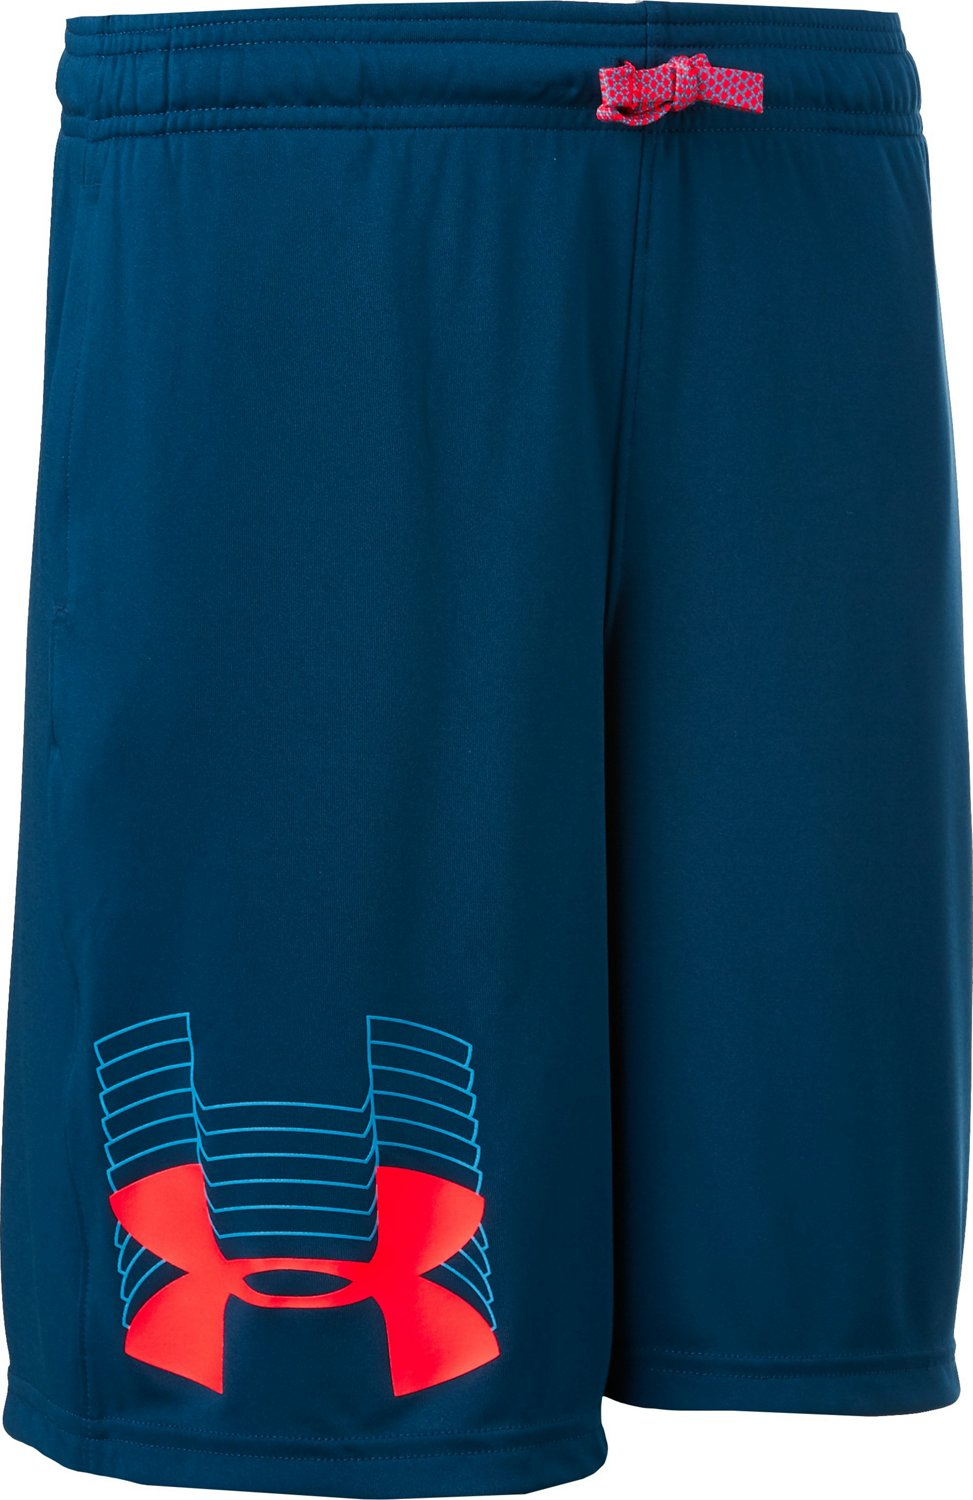 7f2cde6f678 Display product reviews for Under Armour Boys' Prototype Logo Shorts